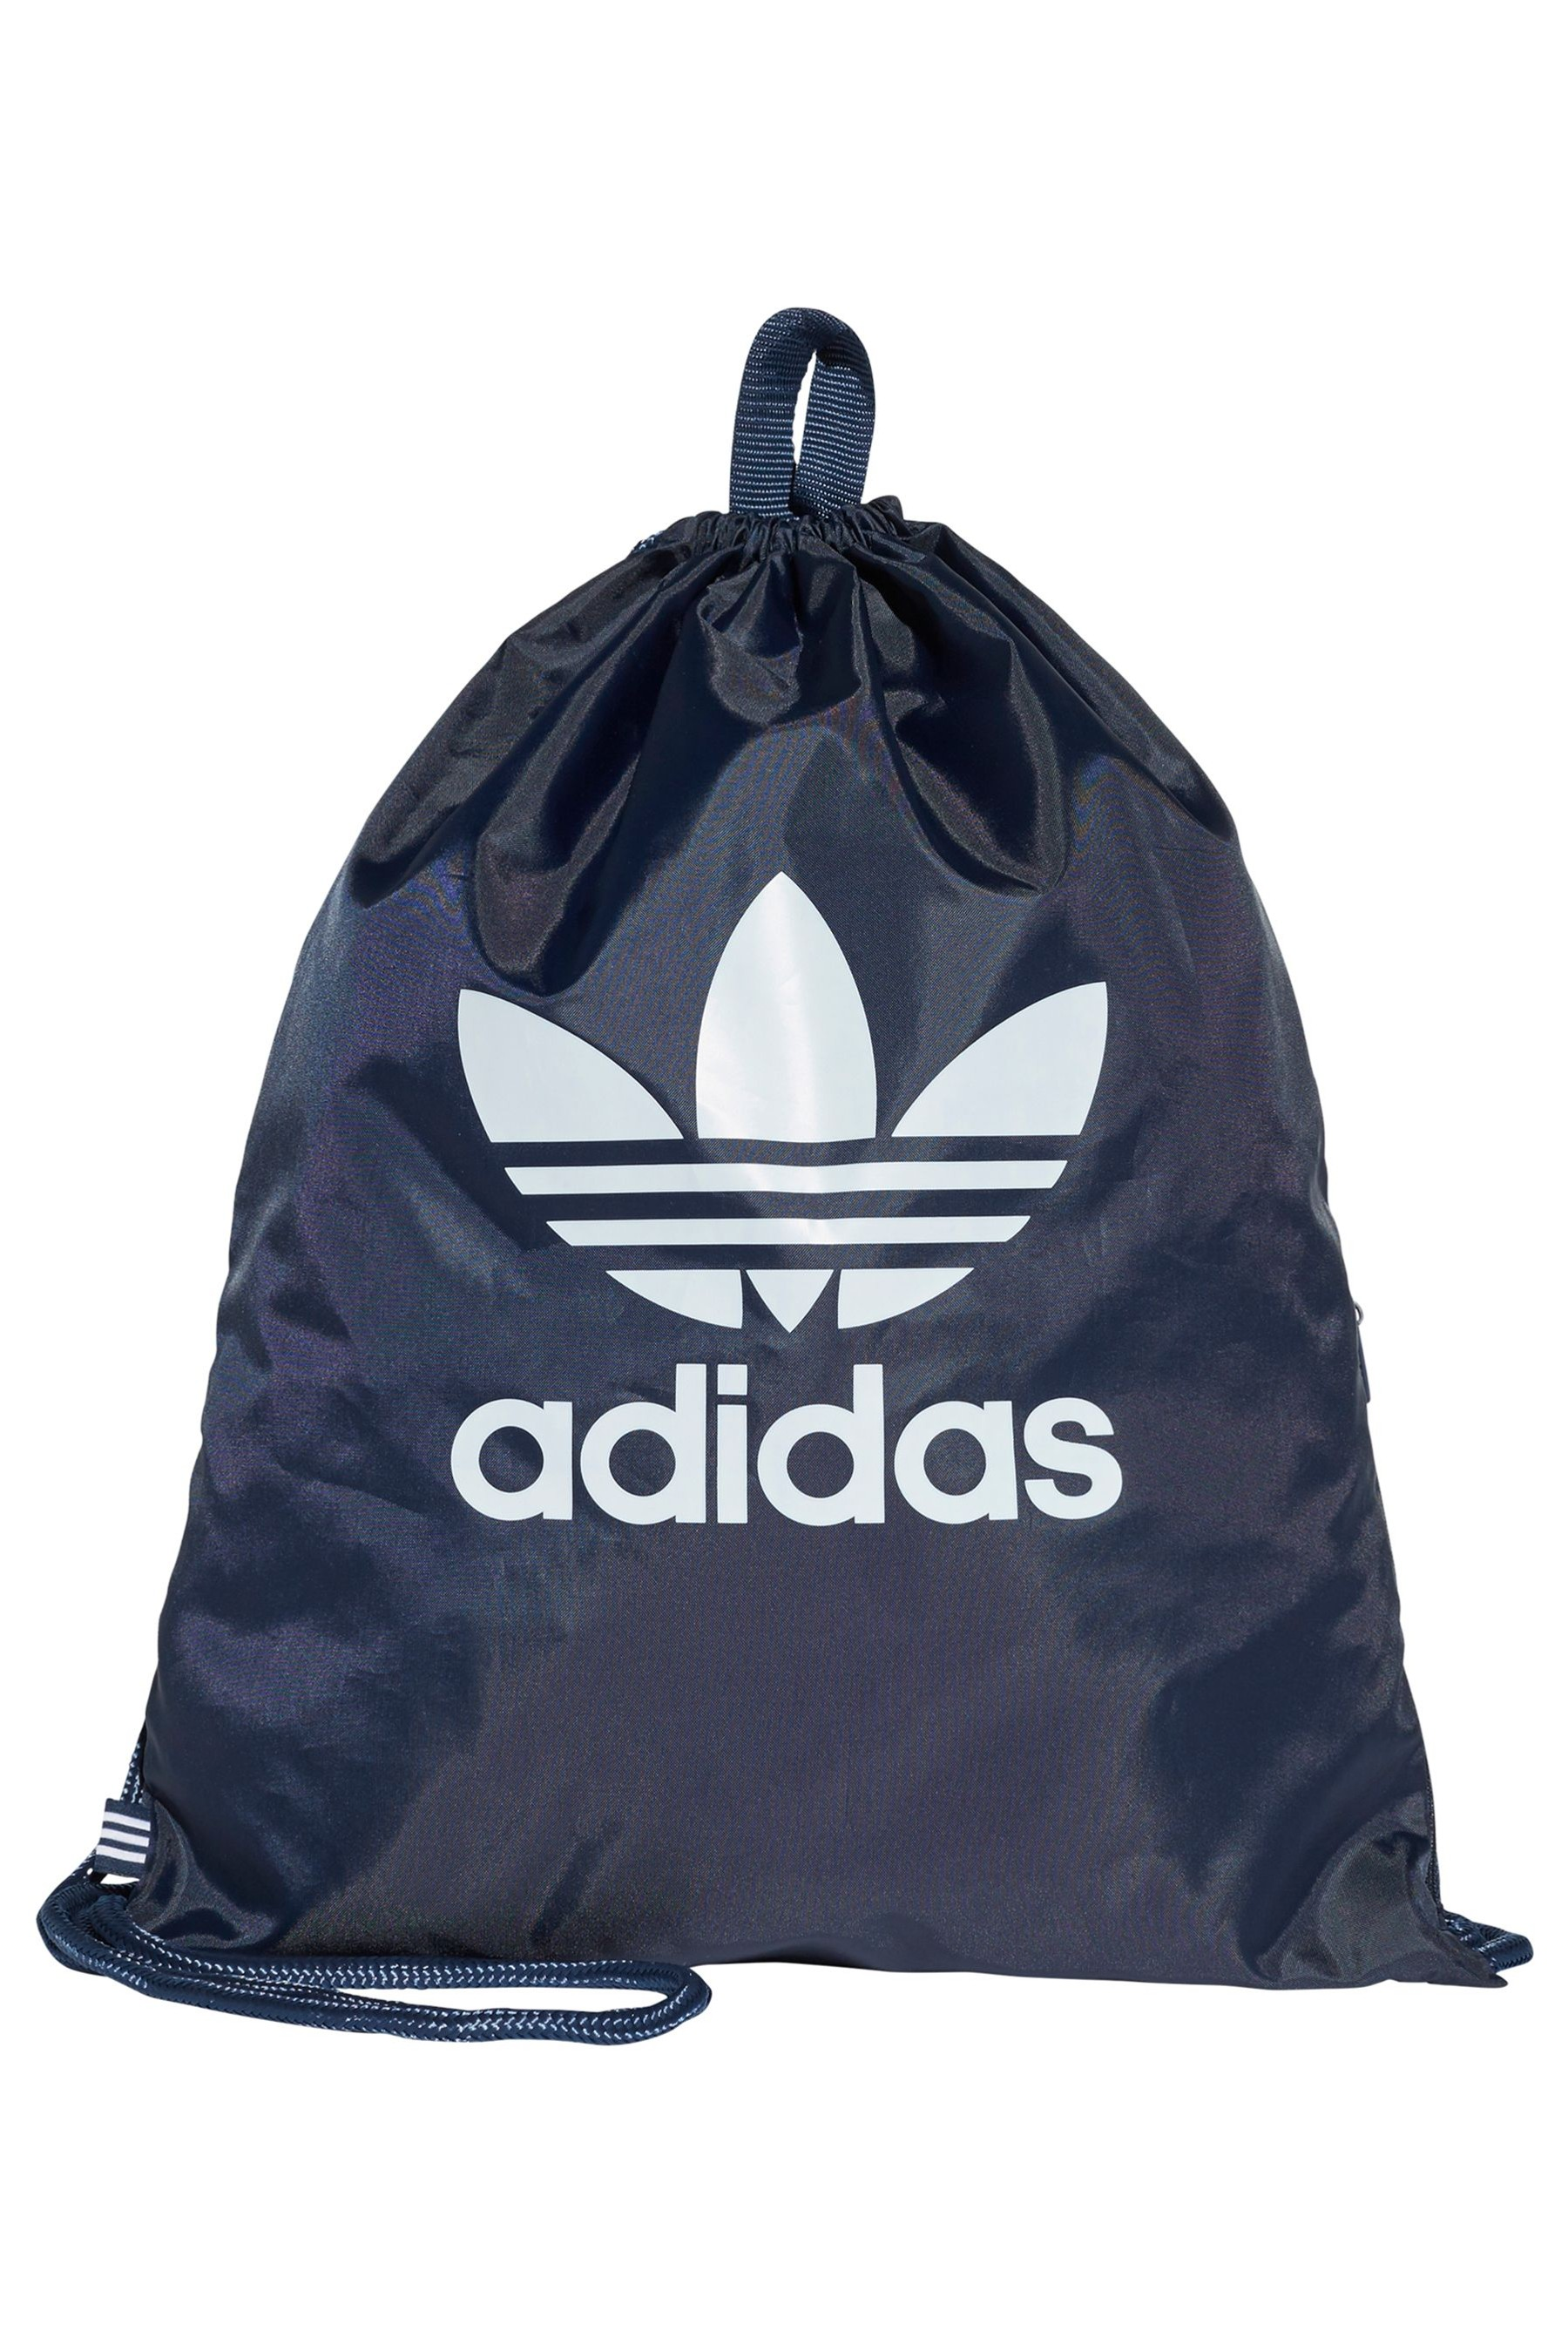 Compare retail prices of Boys adidas Originals Trefoil Gymsack - Blue to get the best deal online